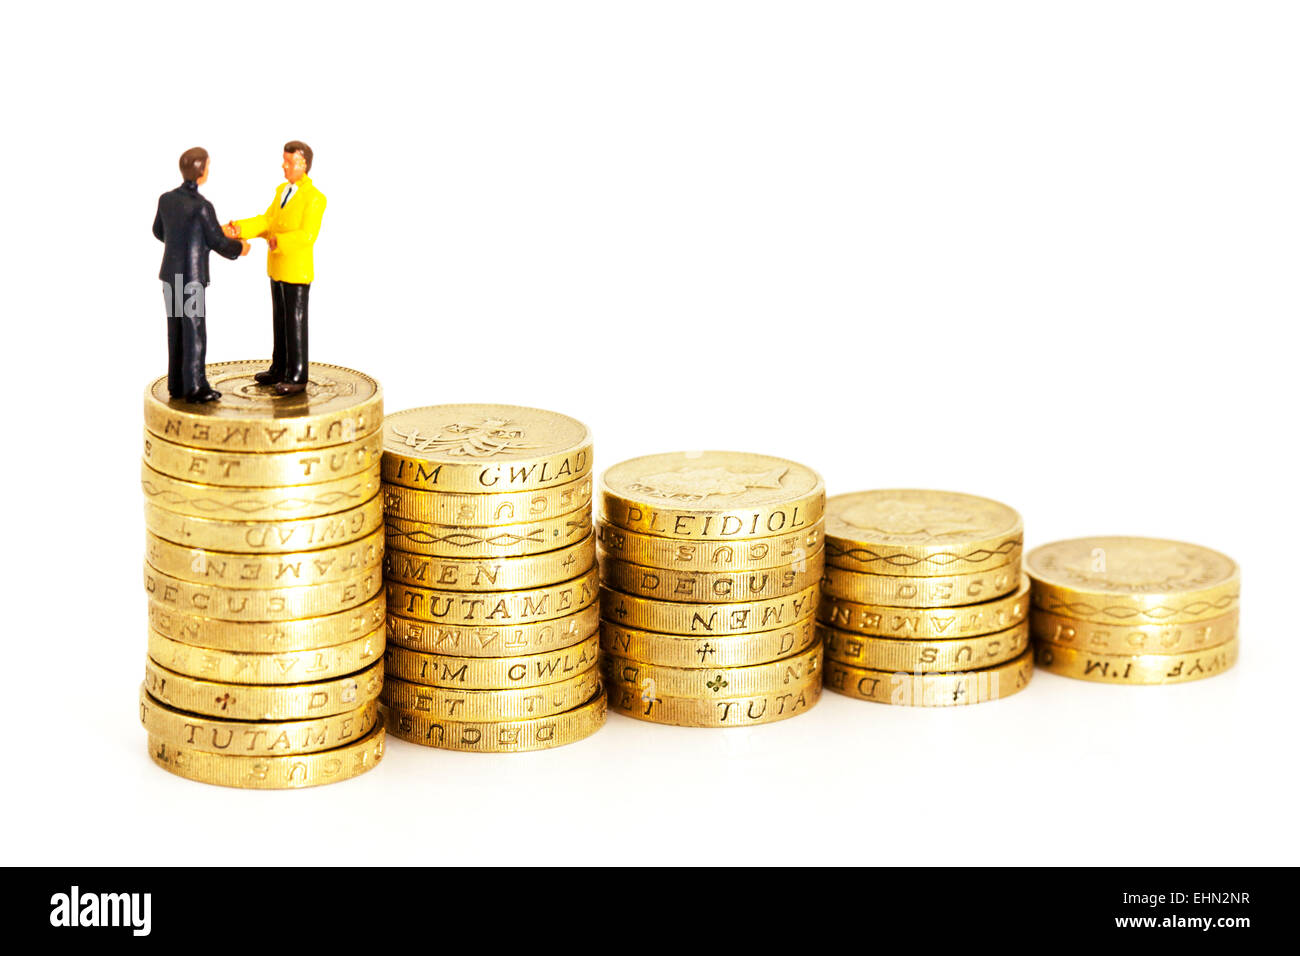 growth money uk currency inflation deflation business pound coins stacks descending isolated cut out cutout white - Stock Image